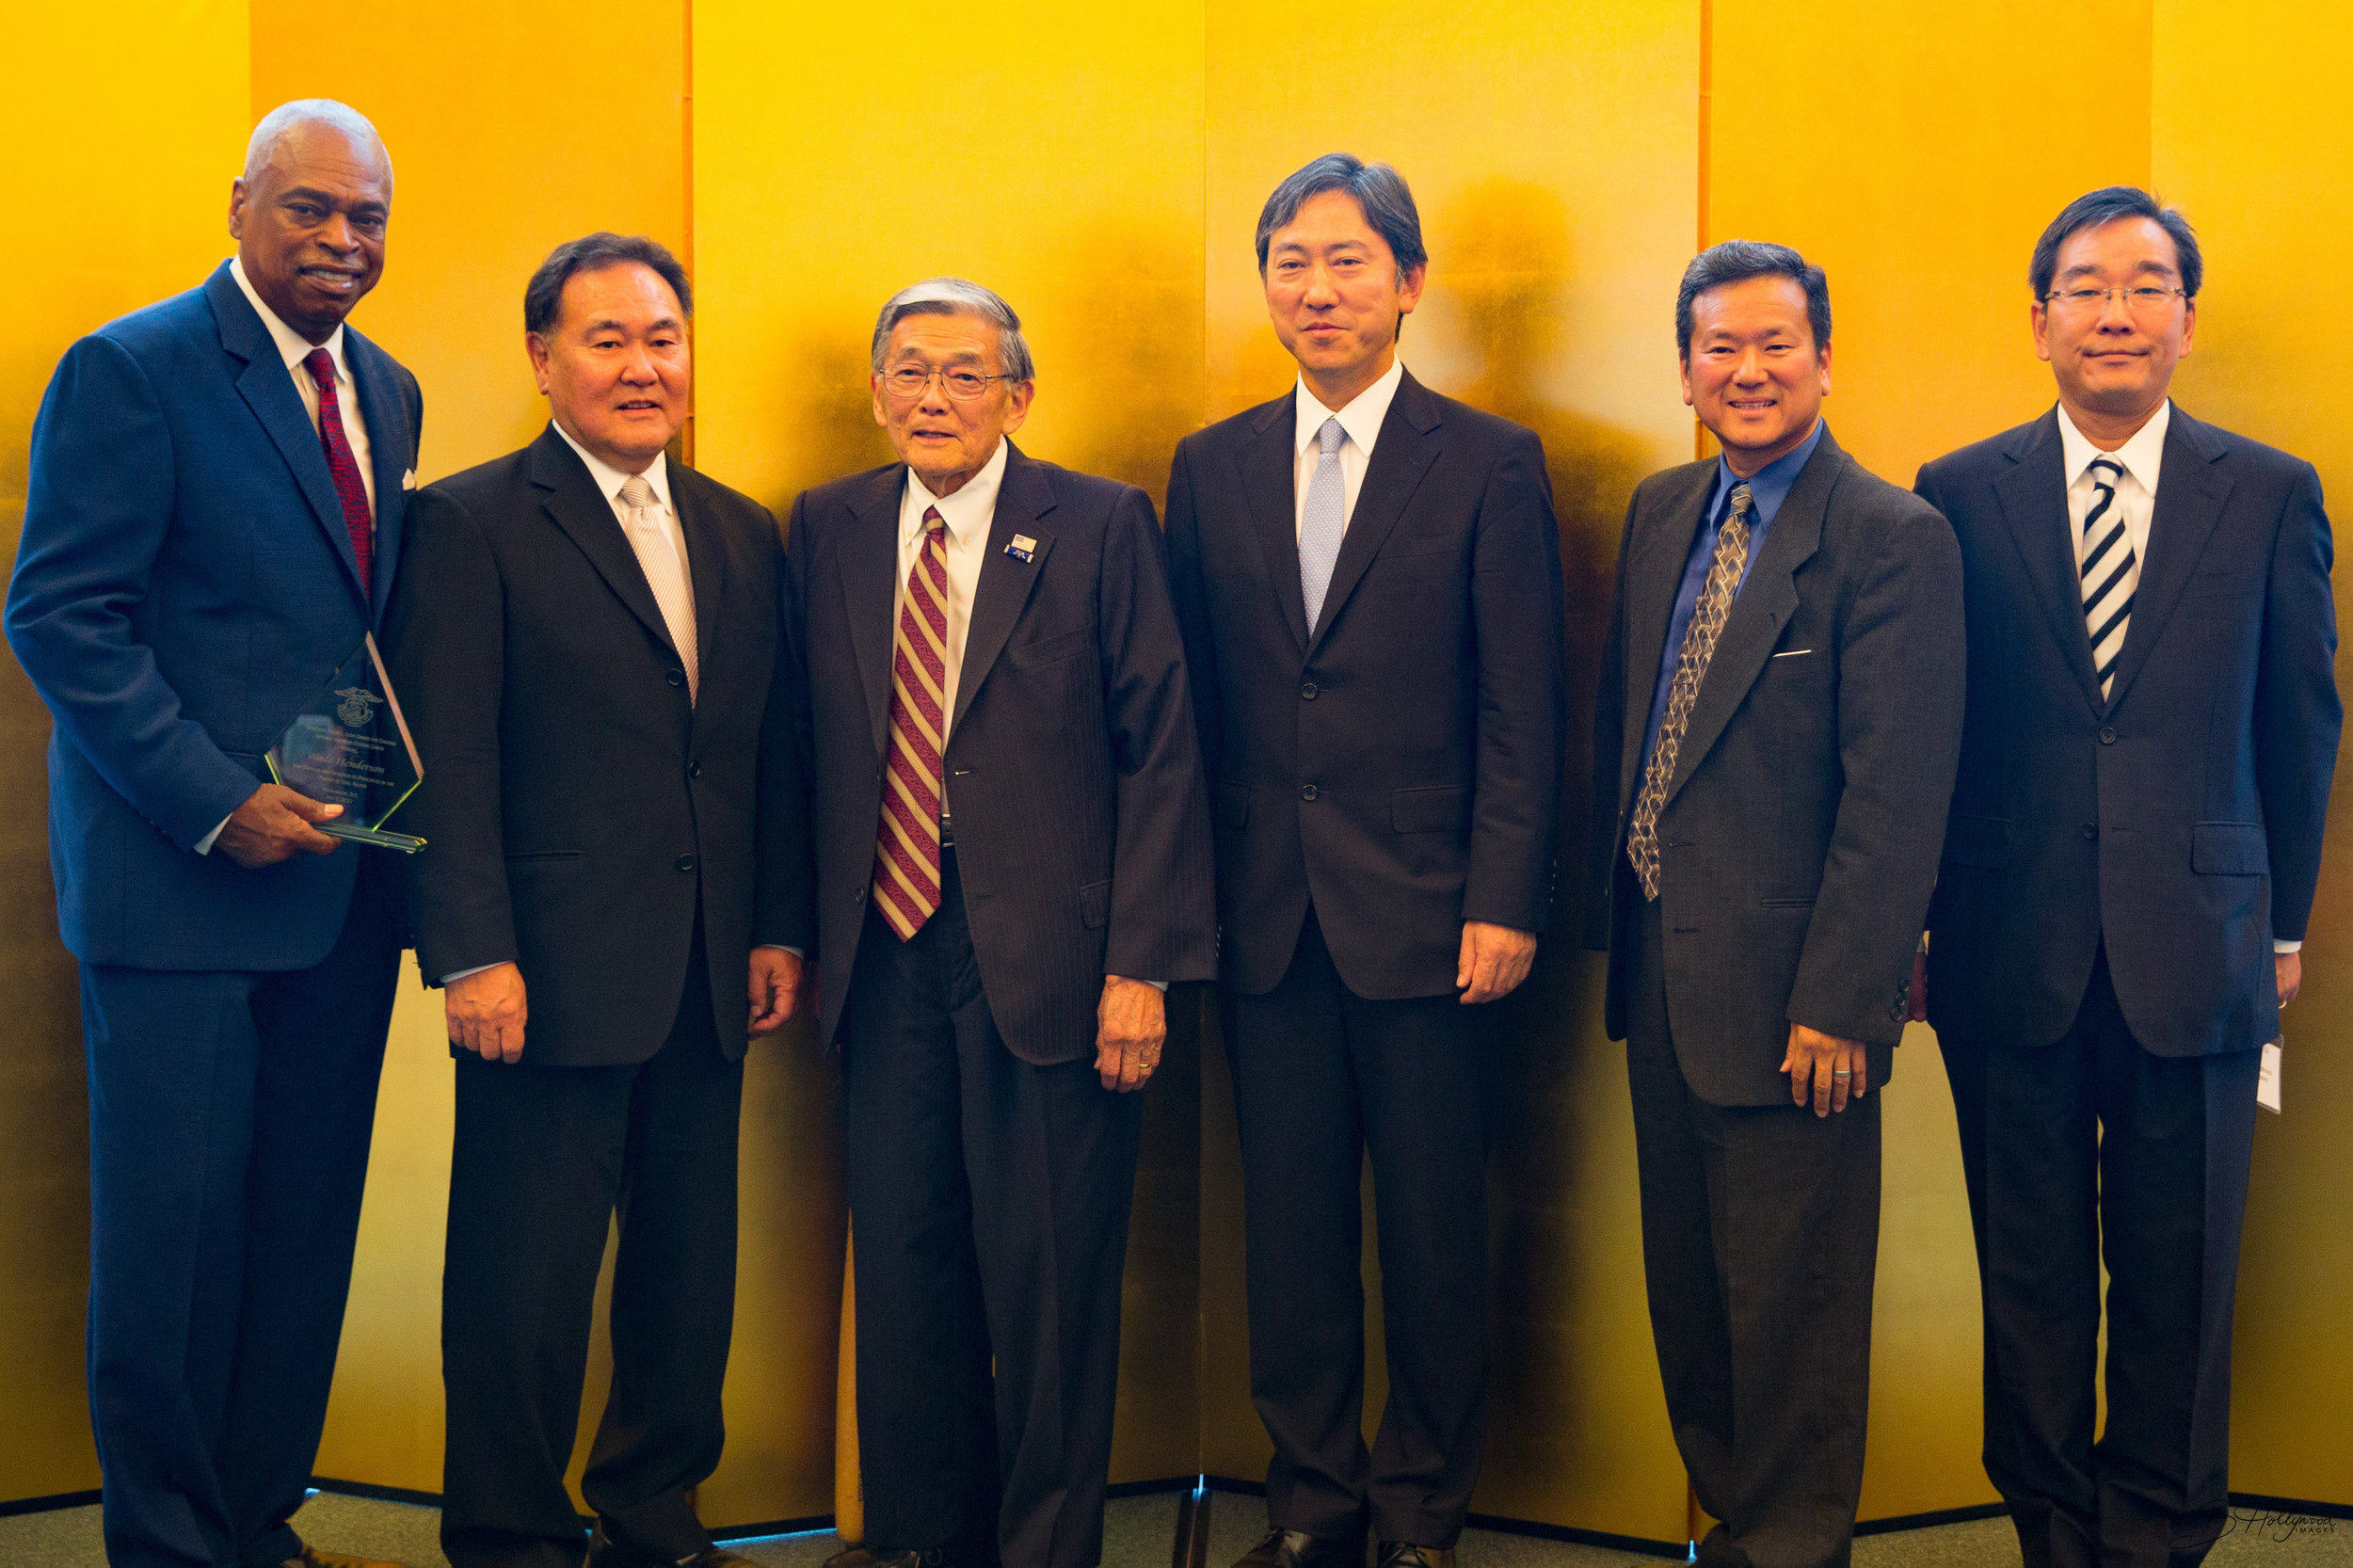 Awardees and dignitaries at the private reception hosted by the Embassy of Japan at the Ambassador's Residence. From left to right: Wade Henderson, Bill Yoshino, Secretary Norman Mineta, Embassy of Japan's DCM Oike, JACL National President Gary Mayeda, Embassy of Japan's Minister Sasayama.